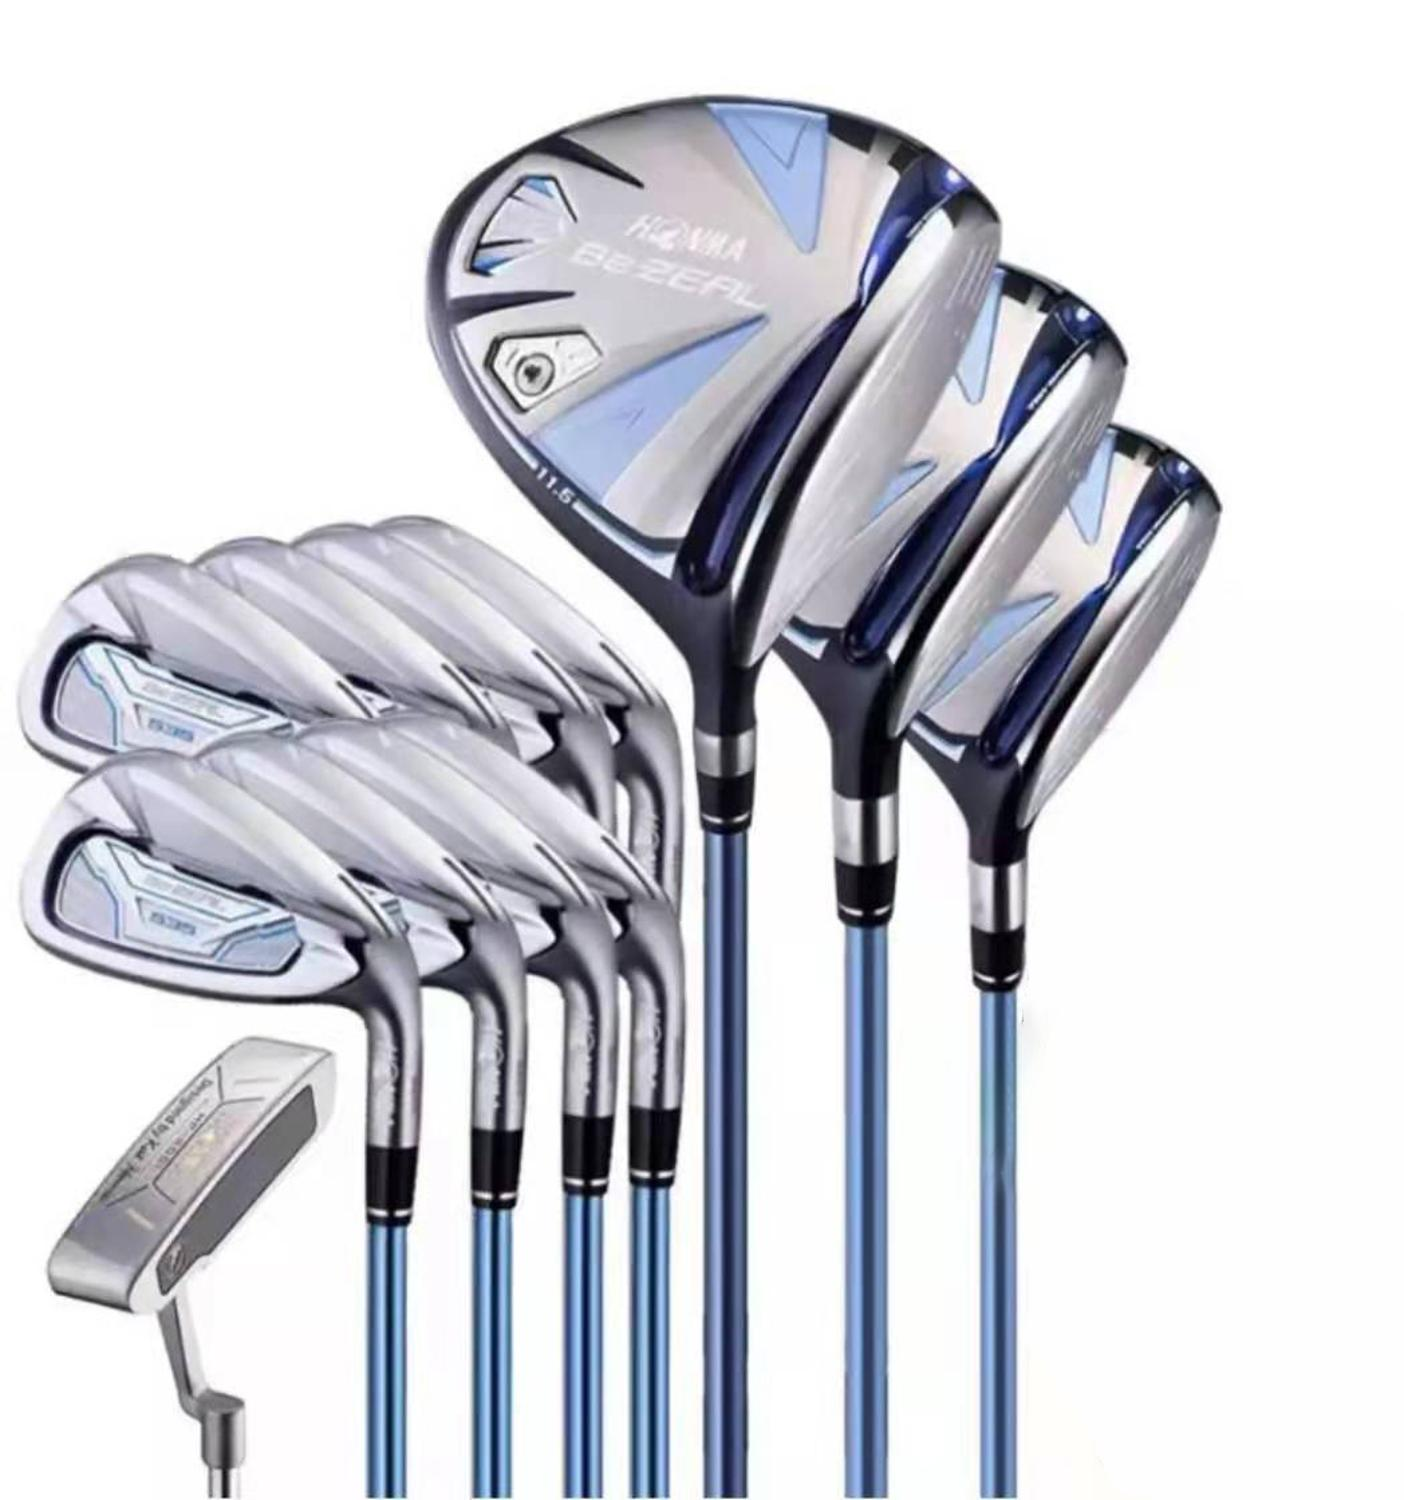 HONMA Golf Club Set HONMA BEZEAL 535 Ladies Golf Club Full Set HONMA BEZEAL 535 Full Set Head Cover Without Ball Bag